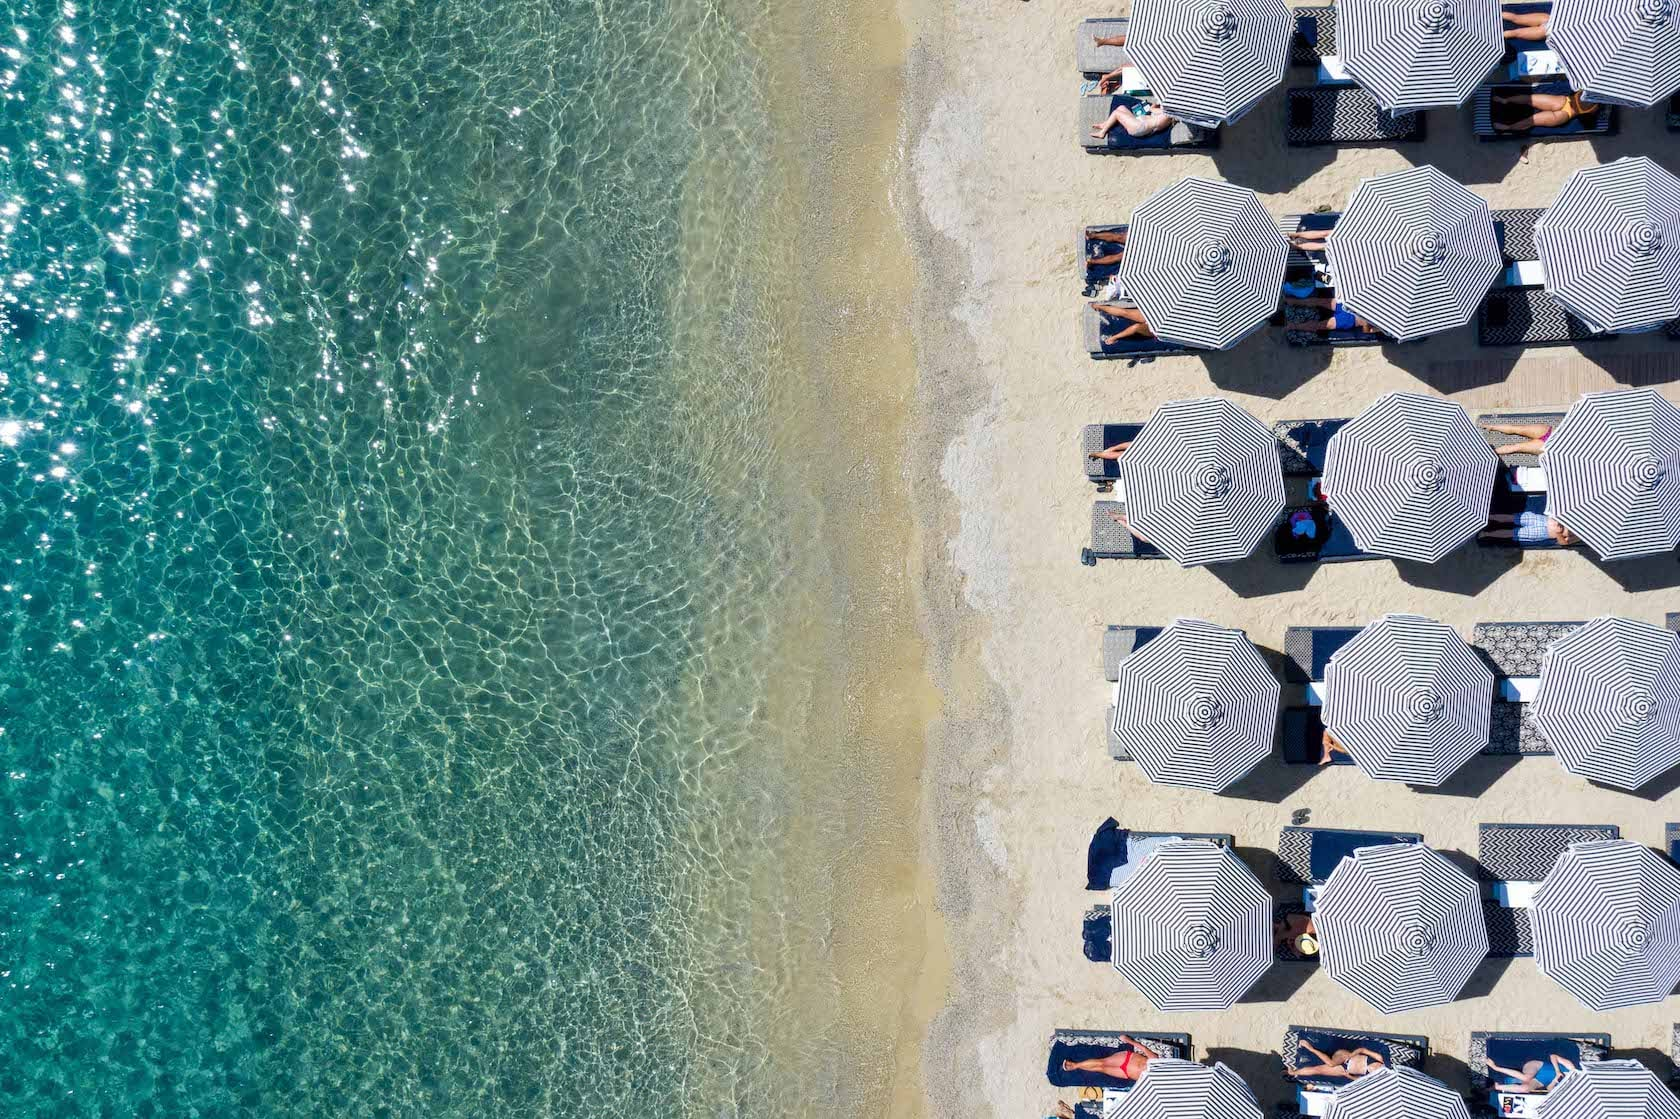 Overhead view of sun umbrellas and the beach of Ornos in Mykonos.